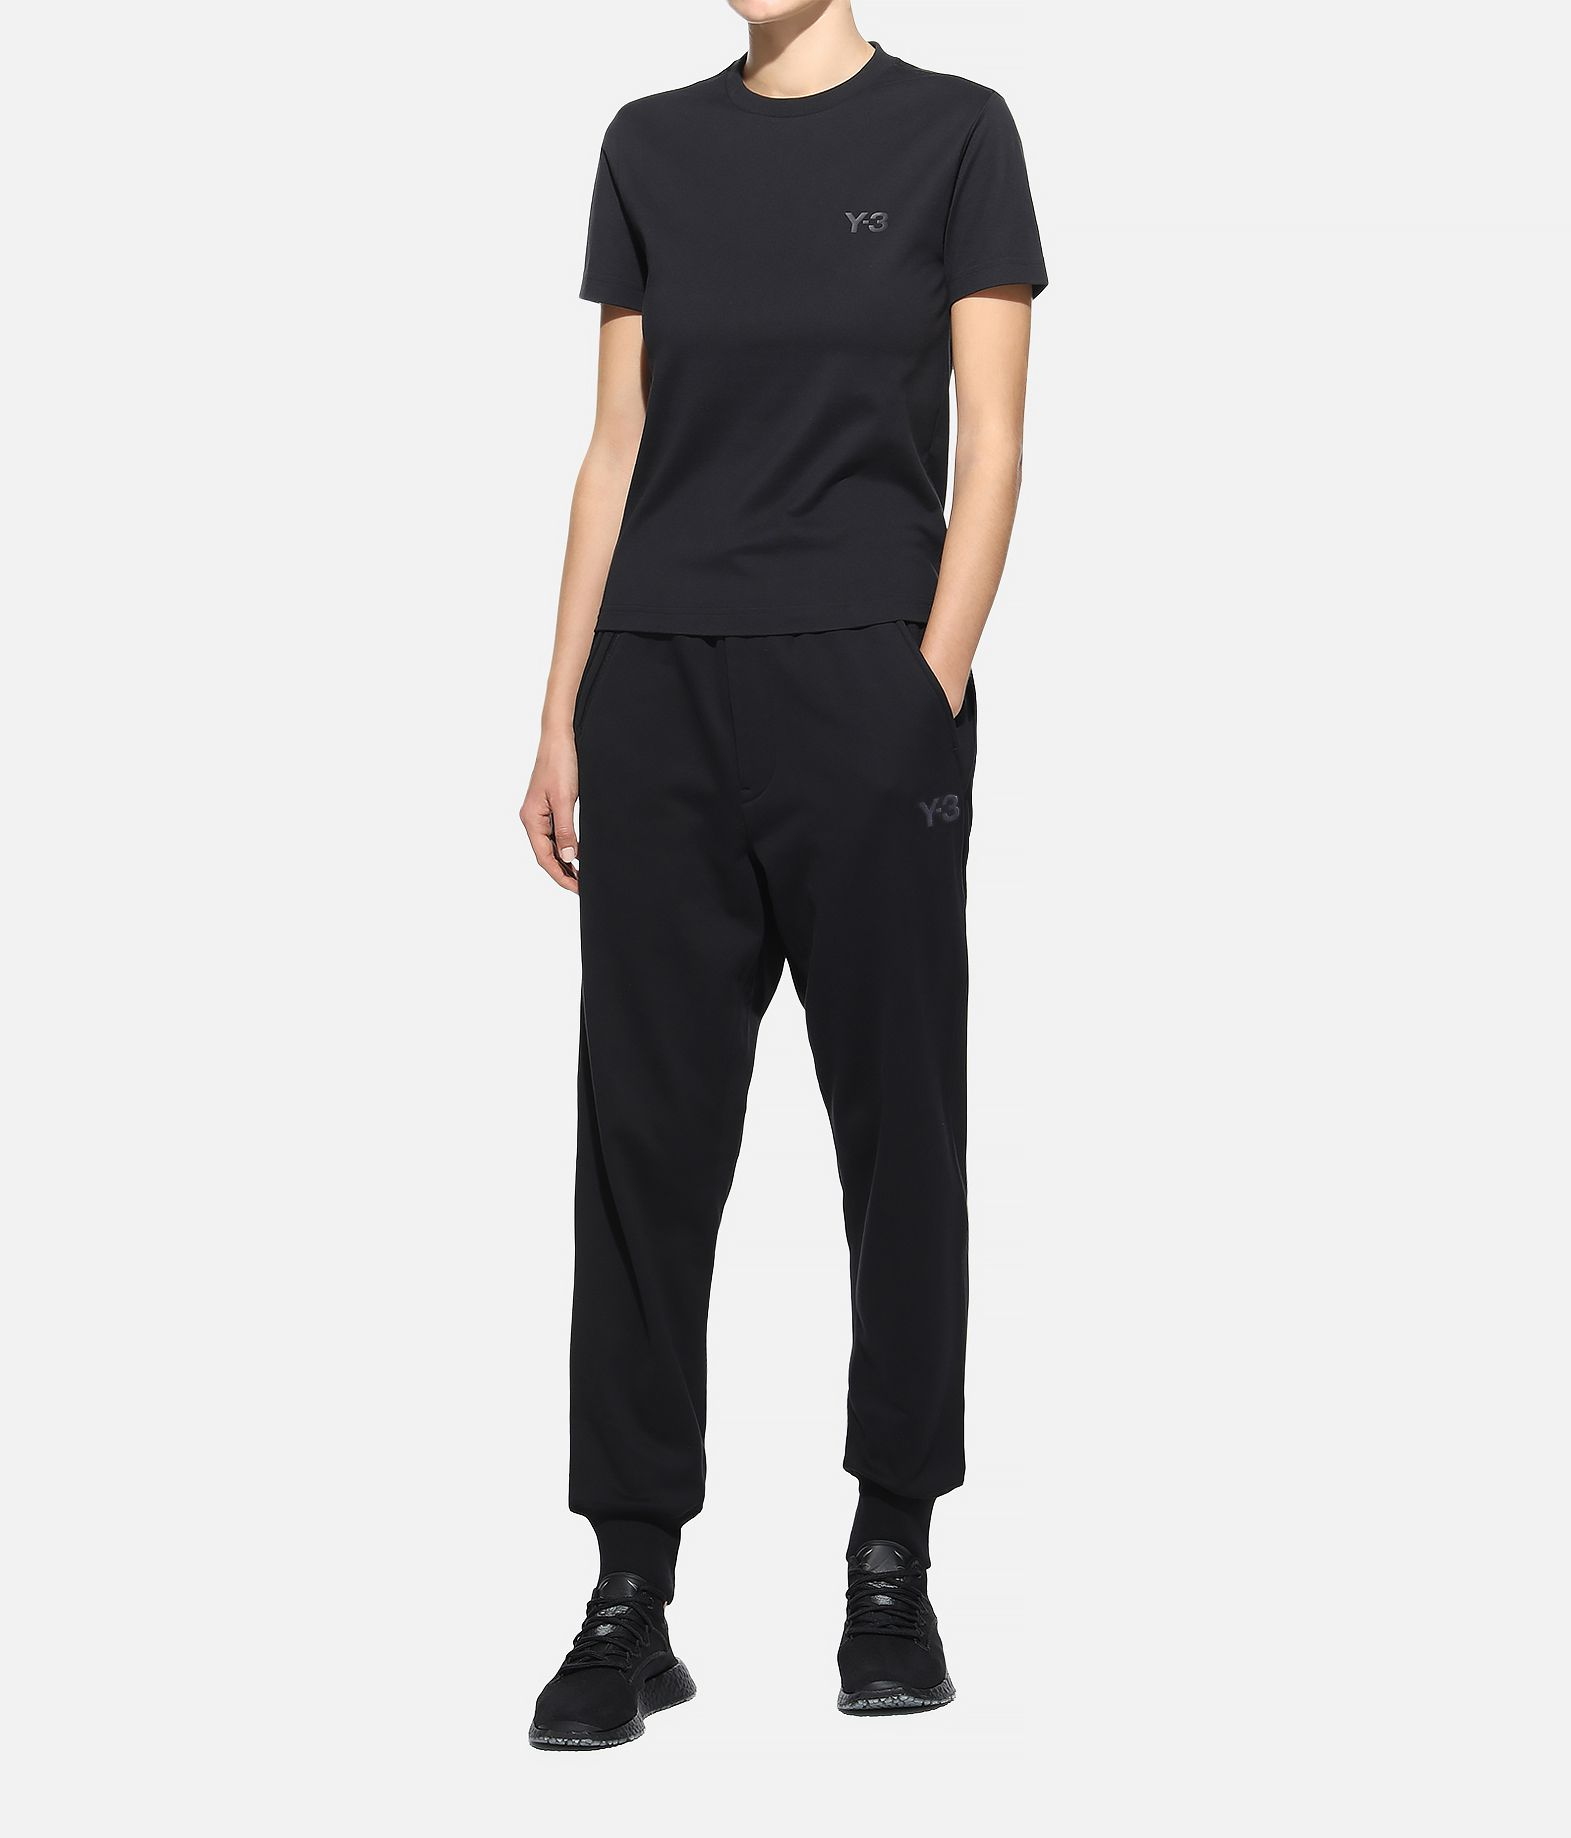 Y-3 Y-3 Short Sleeve Tee  Short sleeve t-shirt Woman a